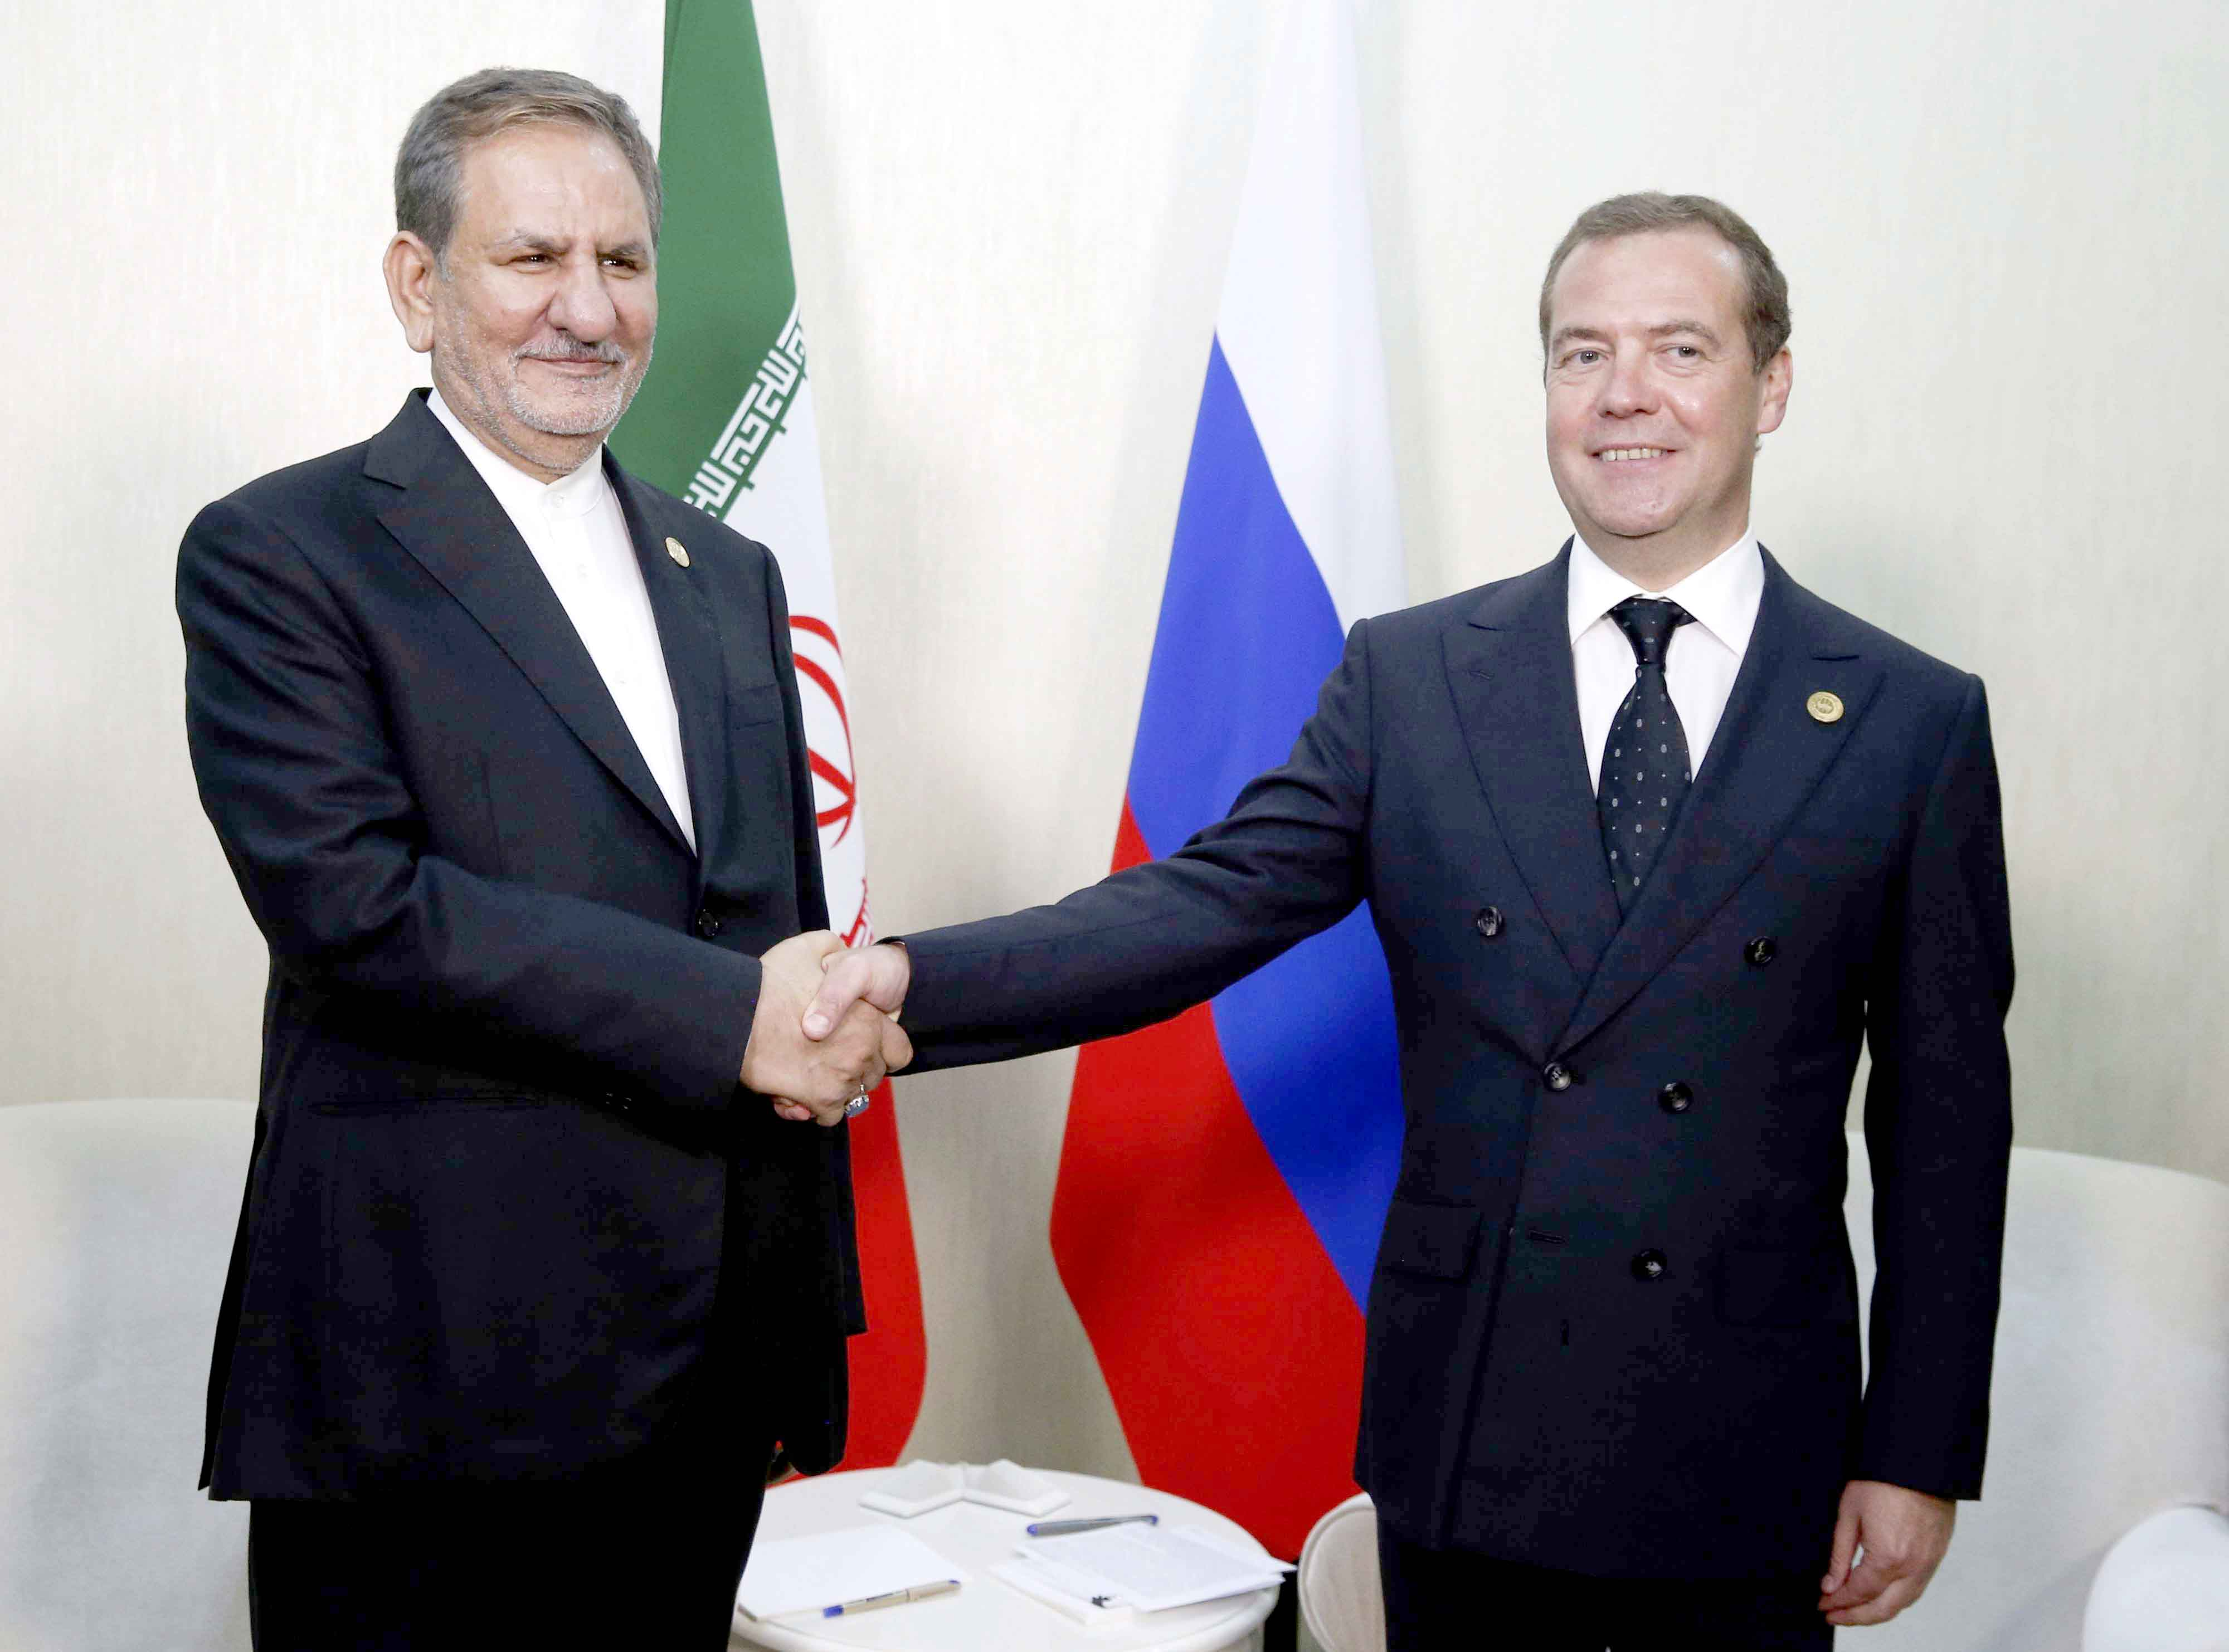 Russian Prime Minister Dmitry Medvedev (R) and Iranian Vice President Eshaq Jahangiri at the First Caspian Economic Forum in Turkmenbashi, Turkmenistan, August 12. (AP)